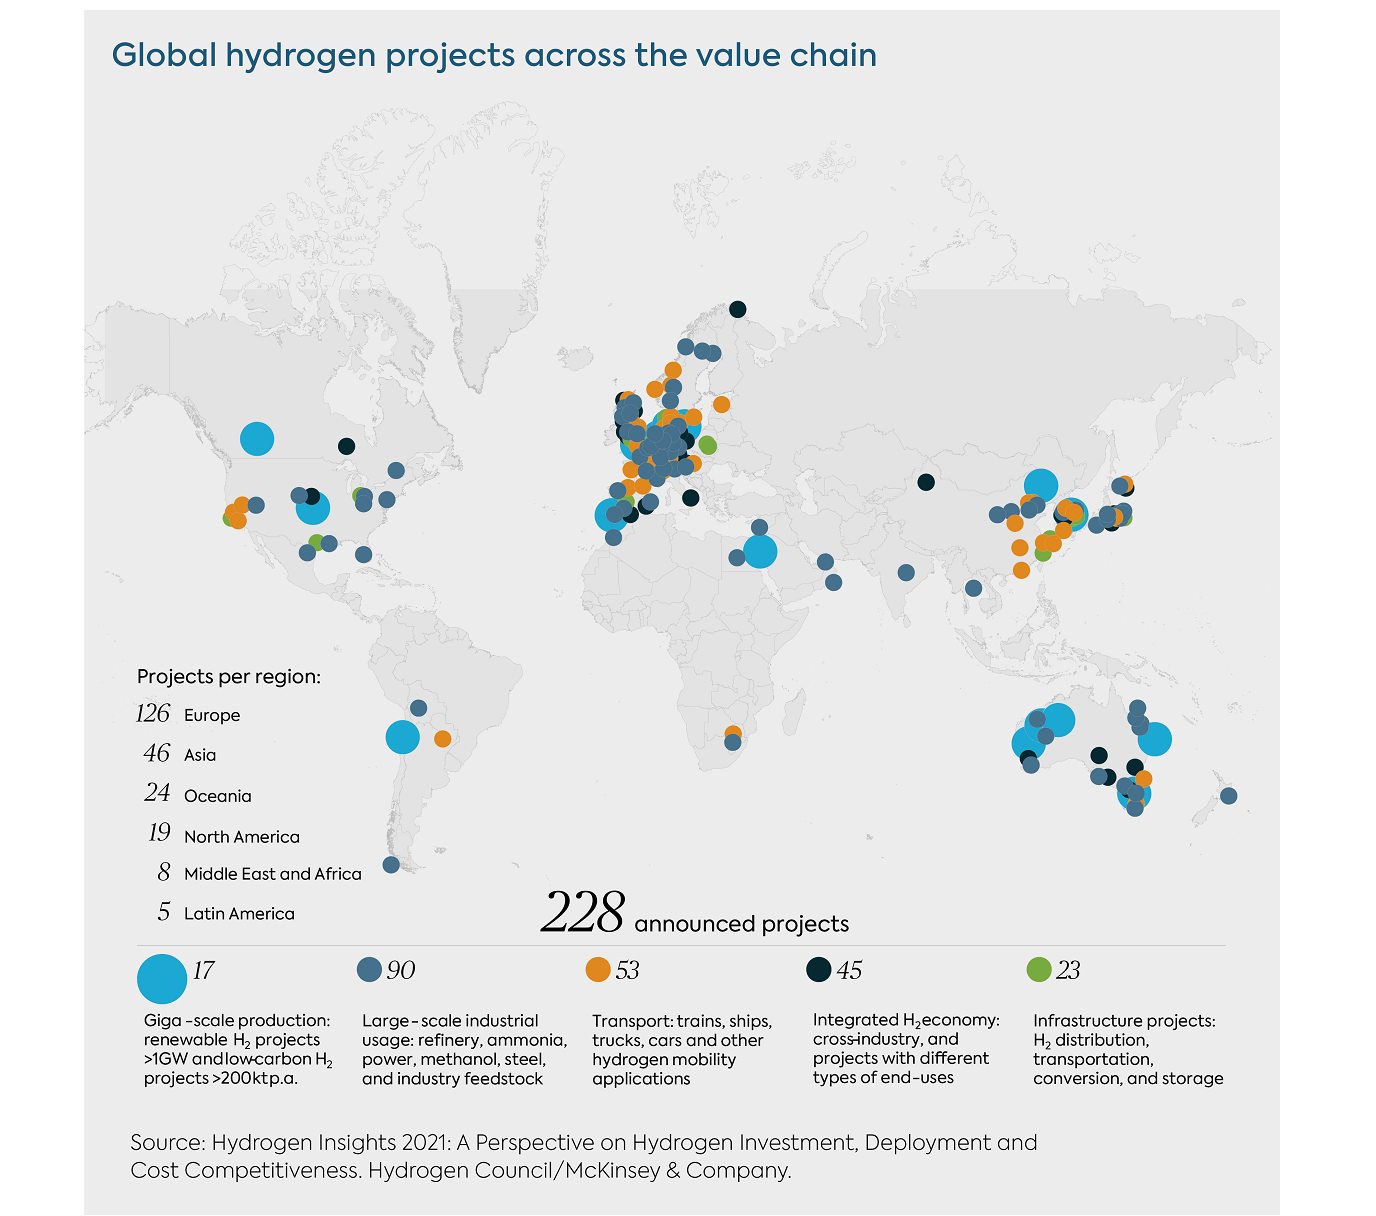 Global Hydrogen Projects Across the Value Chain 2